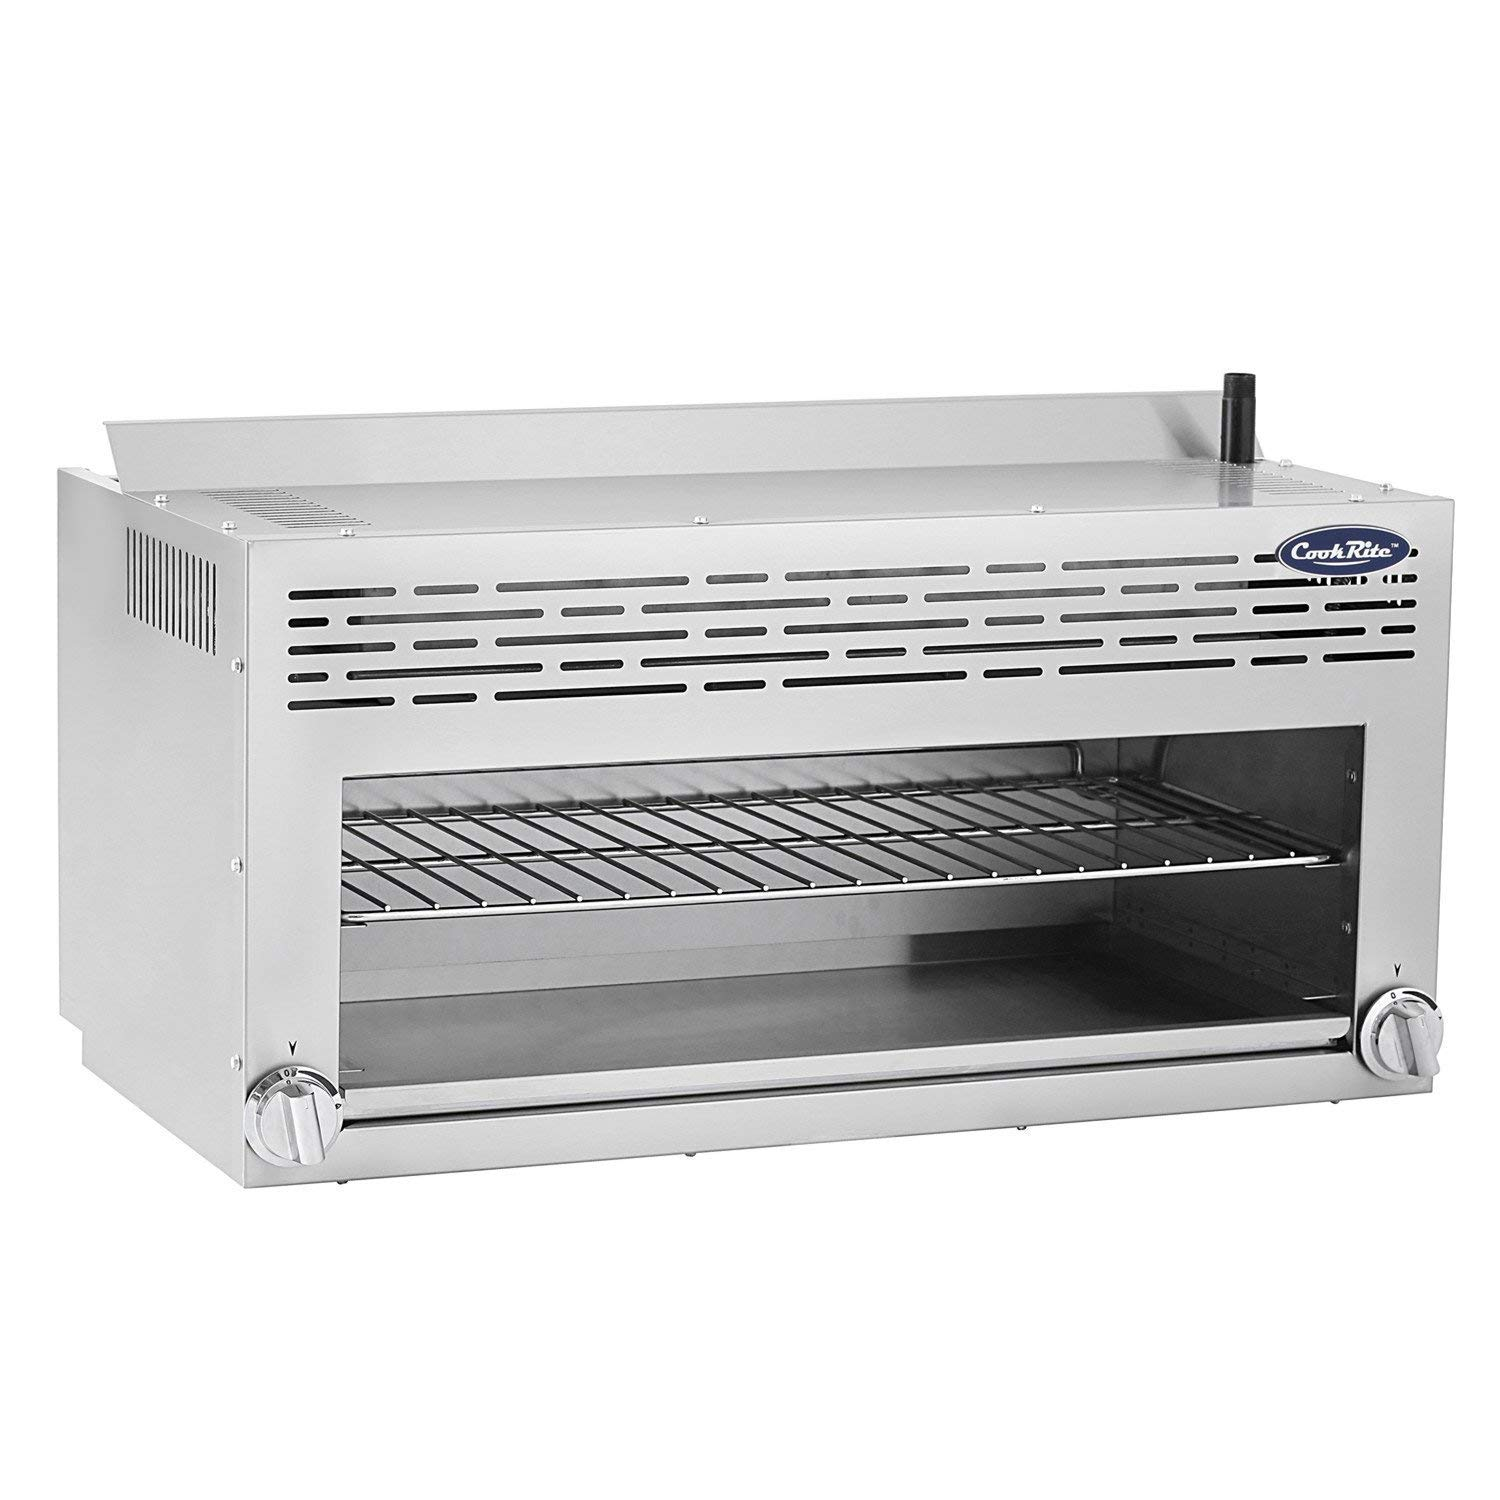 CookRite ATCM-36 Commercial Infrared Cheese Melter Natural Gas Countertop 36